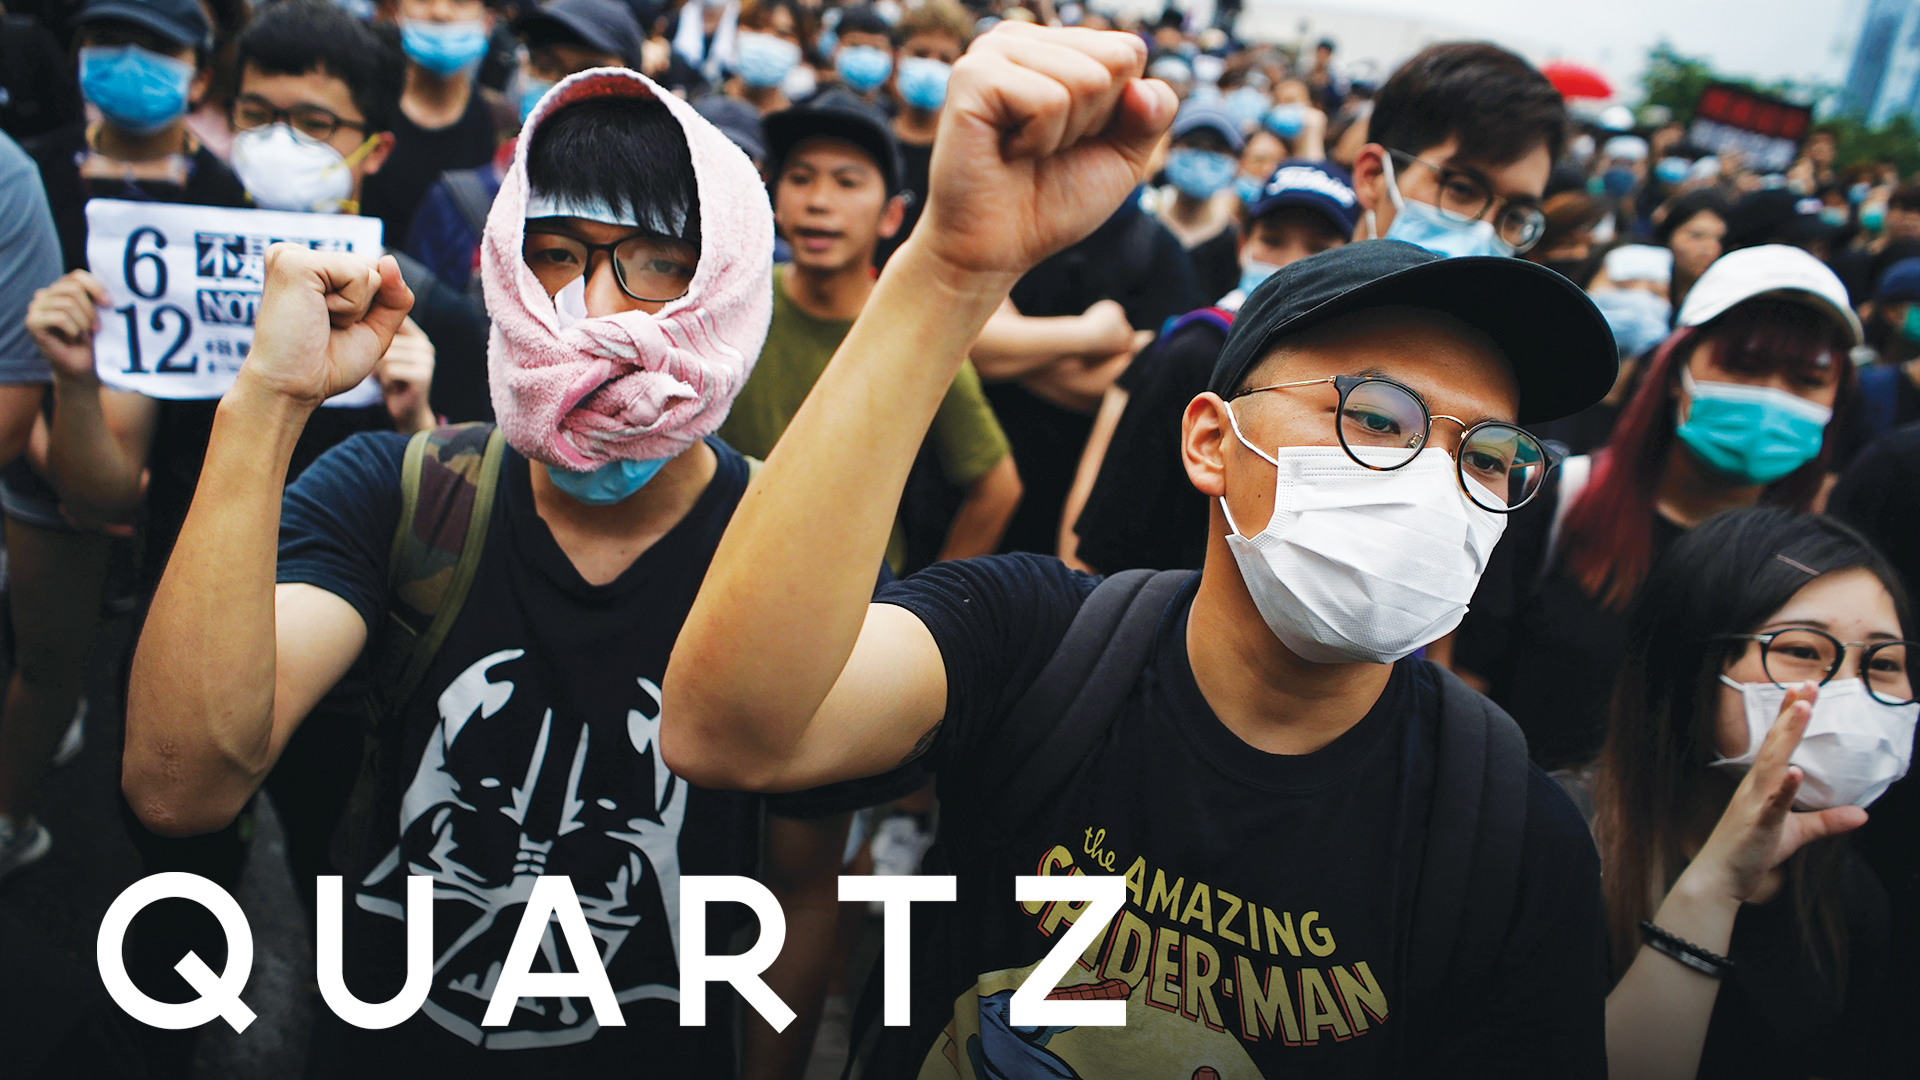 Quartz — Global news and insights for leaders